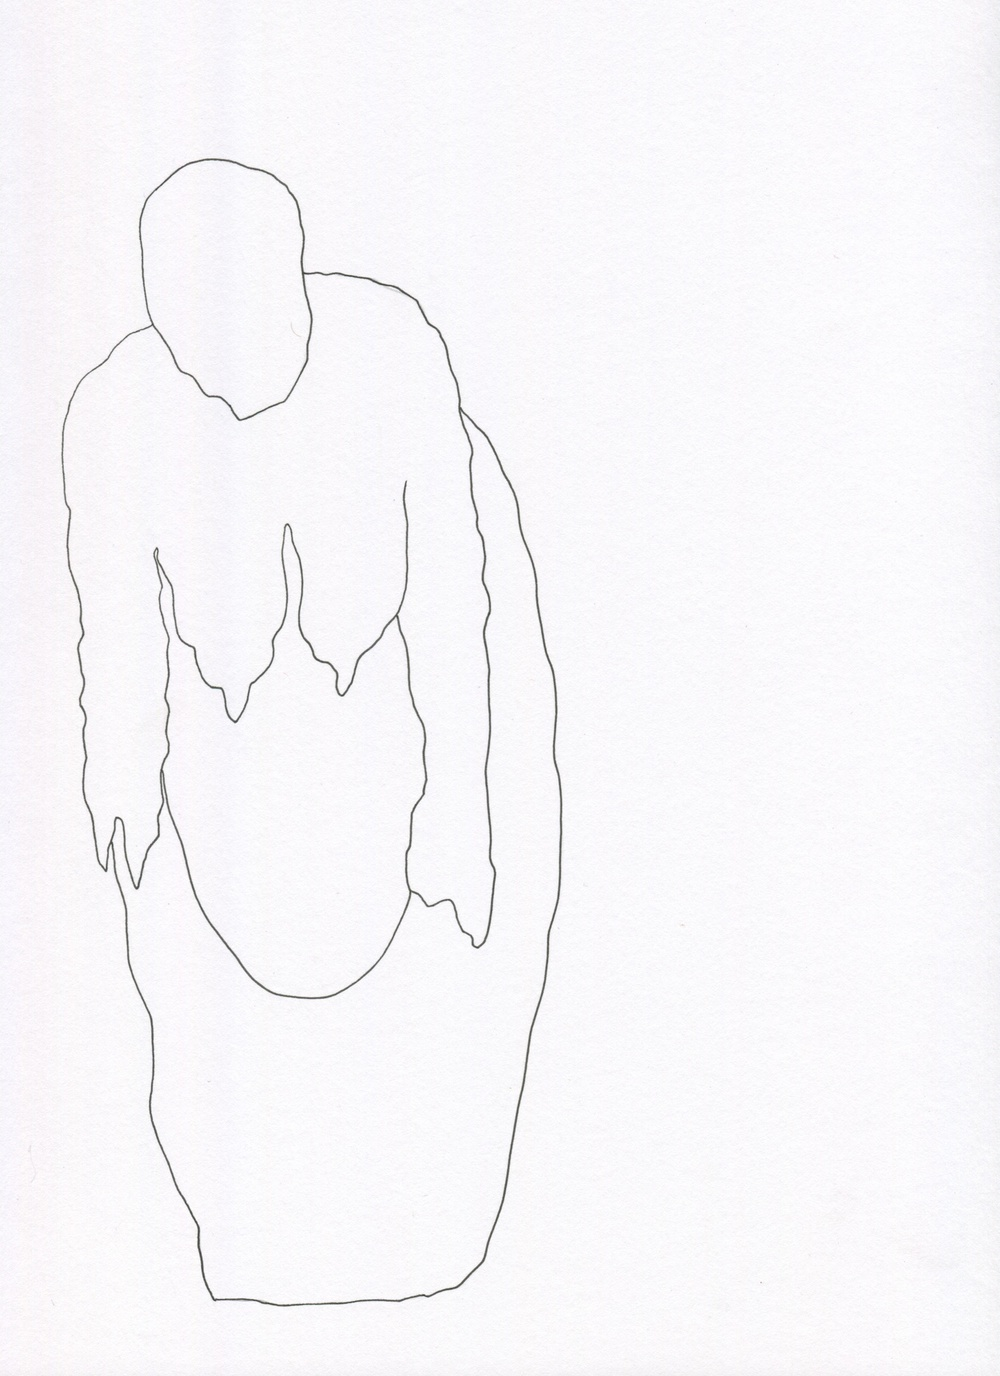 Swelling and Sagging from the Venus of Brisbane series, 2015, Ink on paper, 21.0 x 30.0 cm